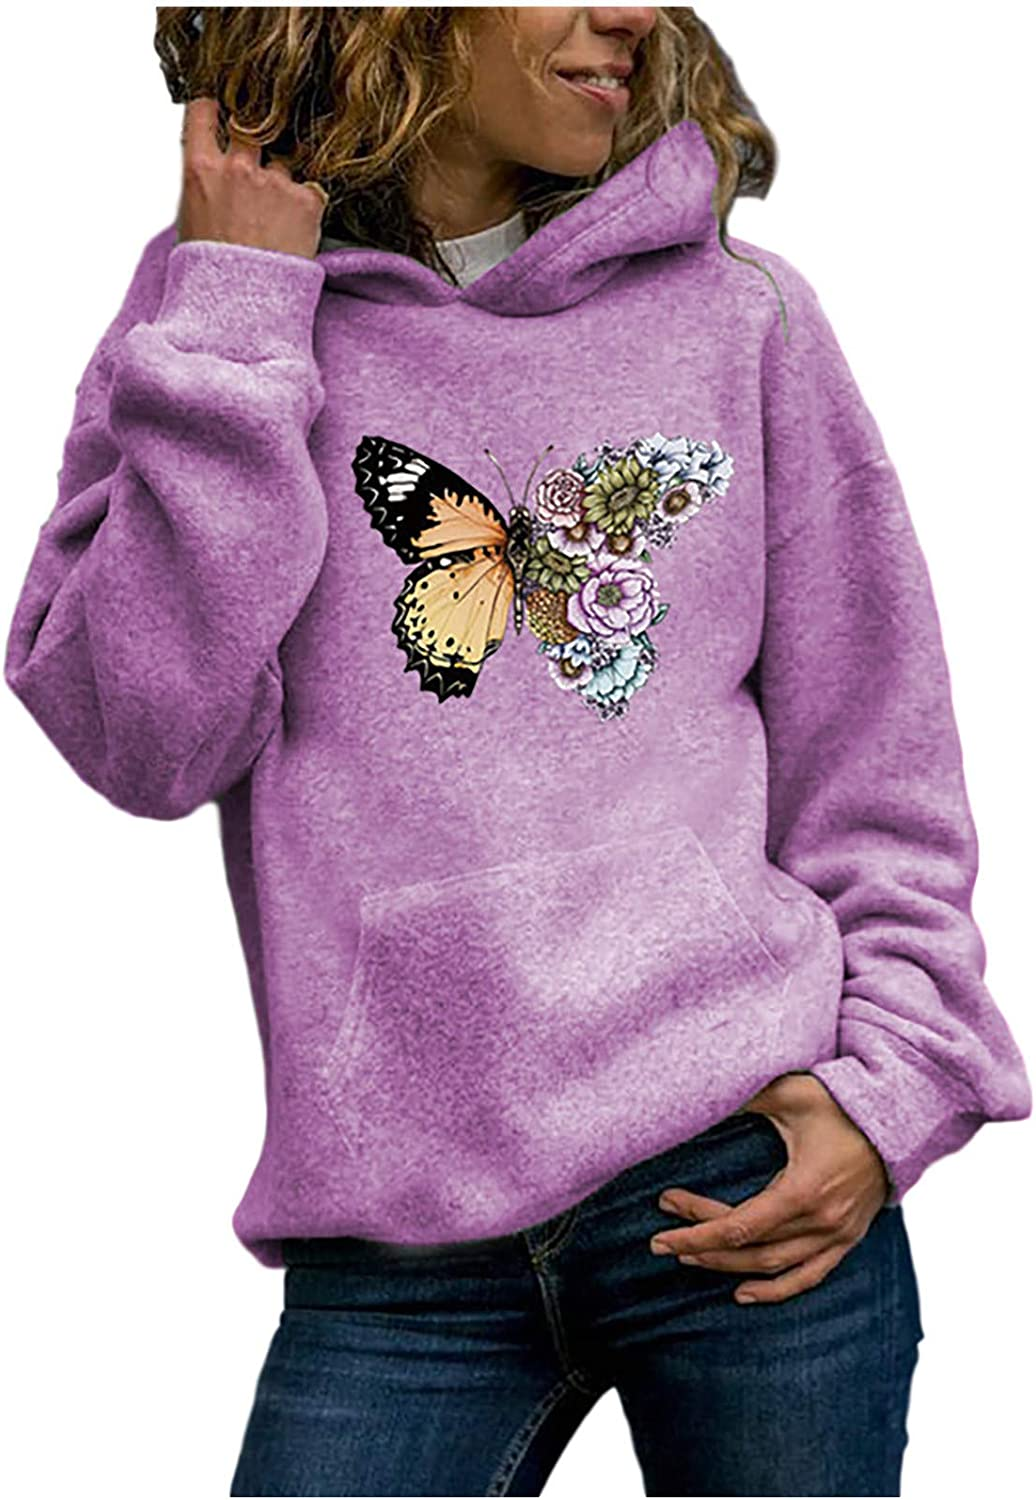 Lozeny Women Sunflower Graphic Leopard Hooded Sweaters Pullover Long Sleeve Hoodies Casual Shirts Tops Sweatshirts